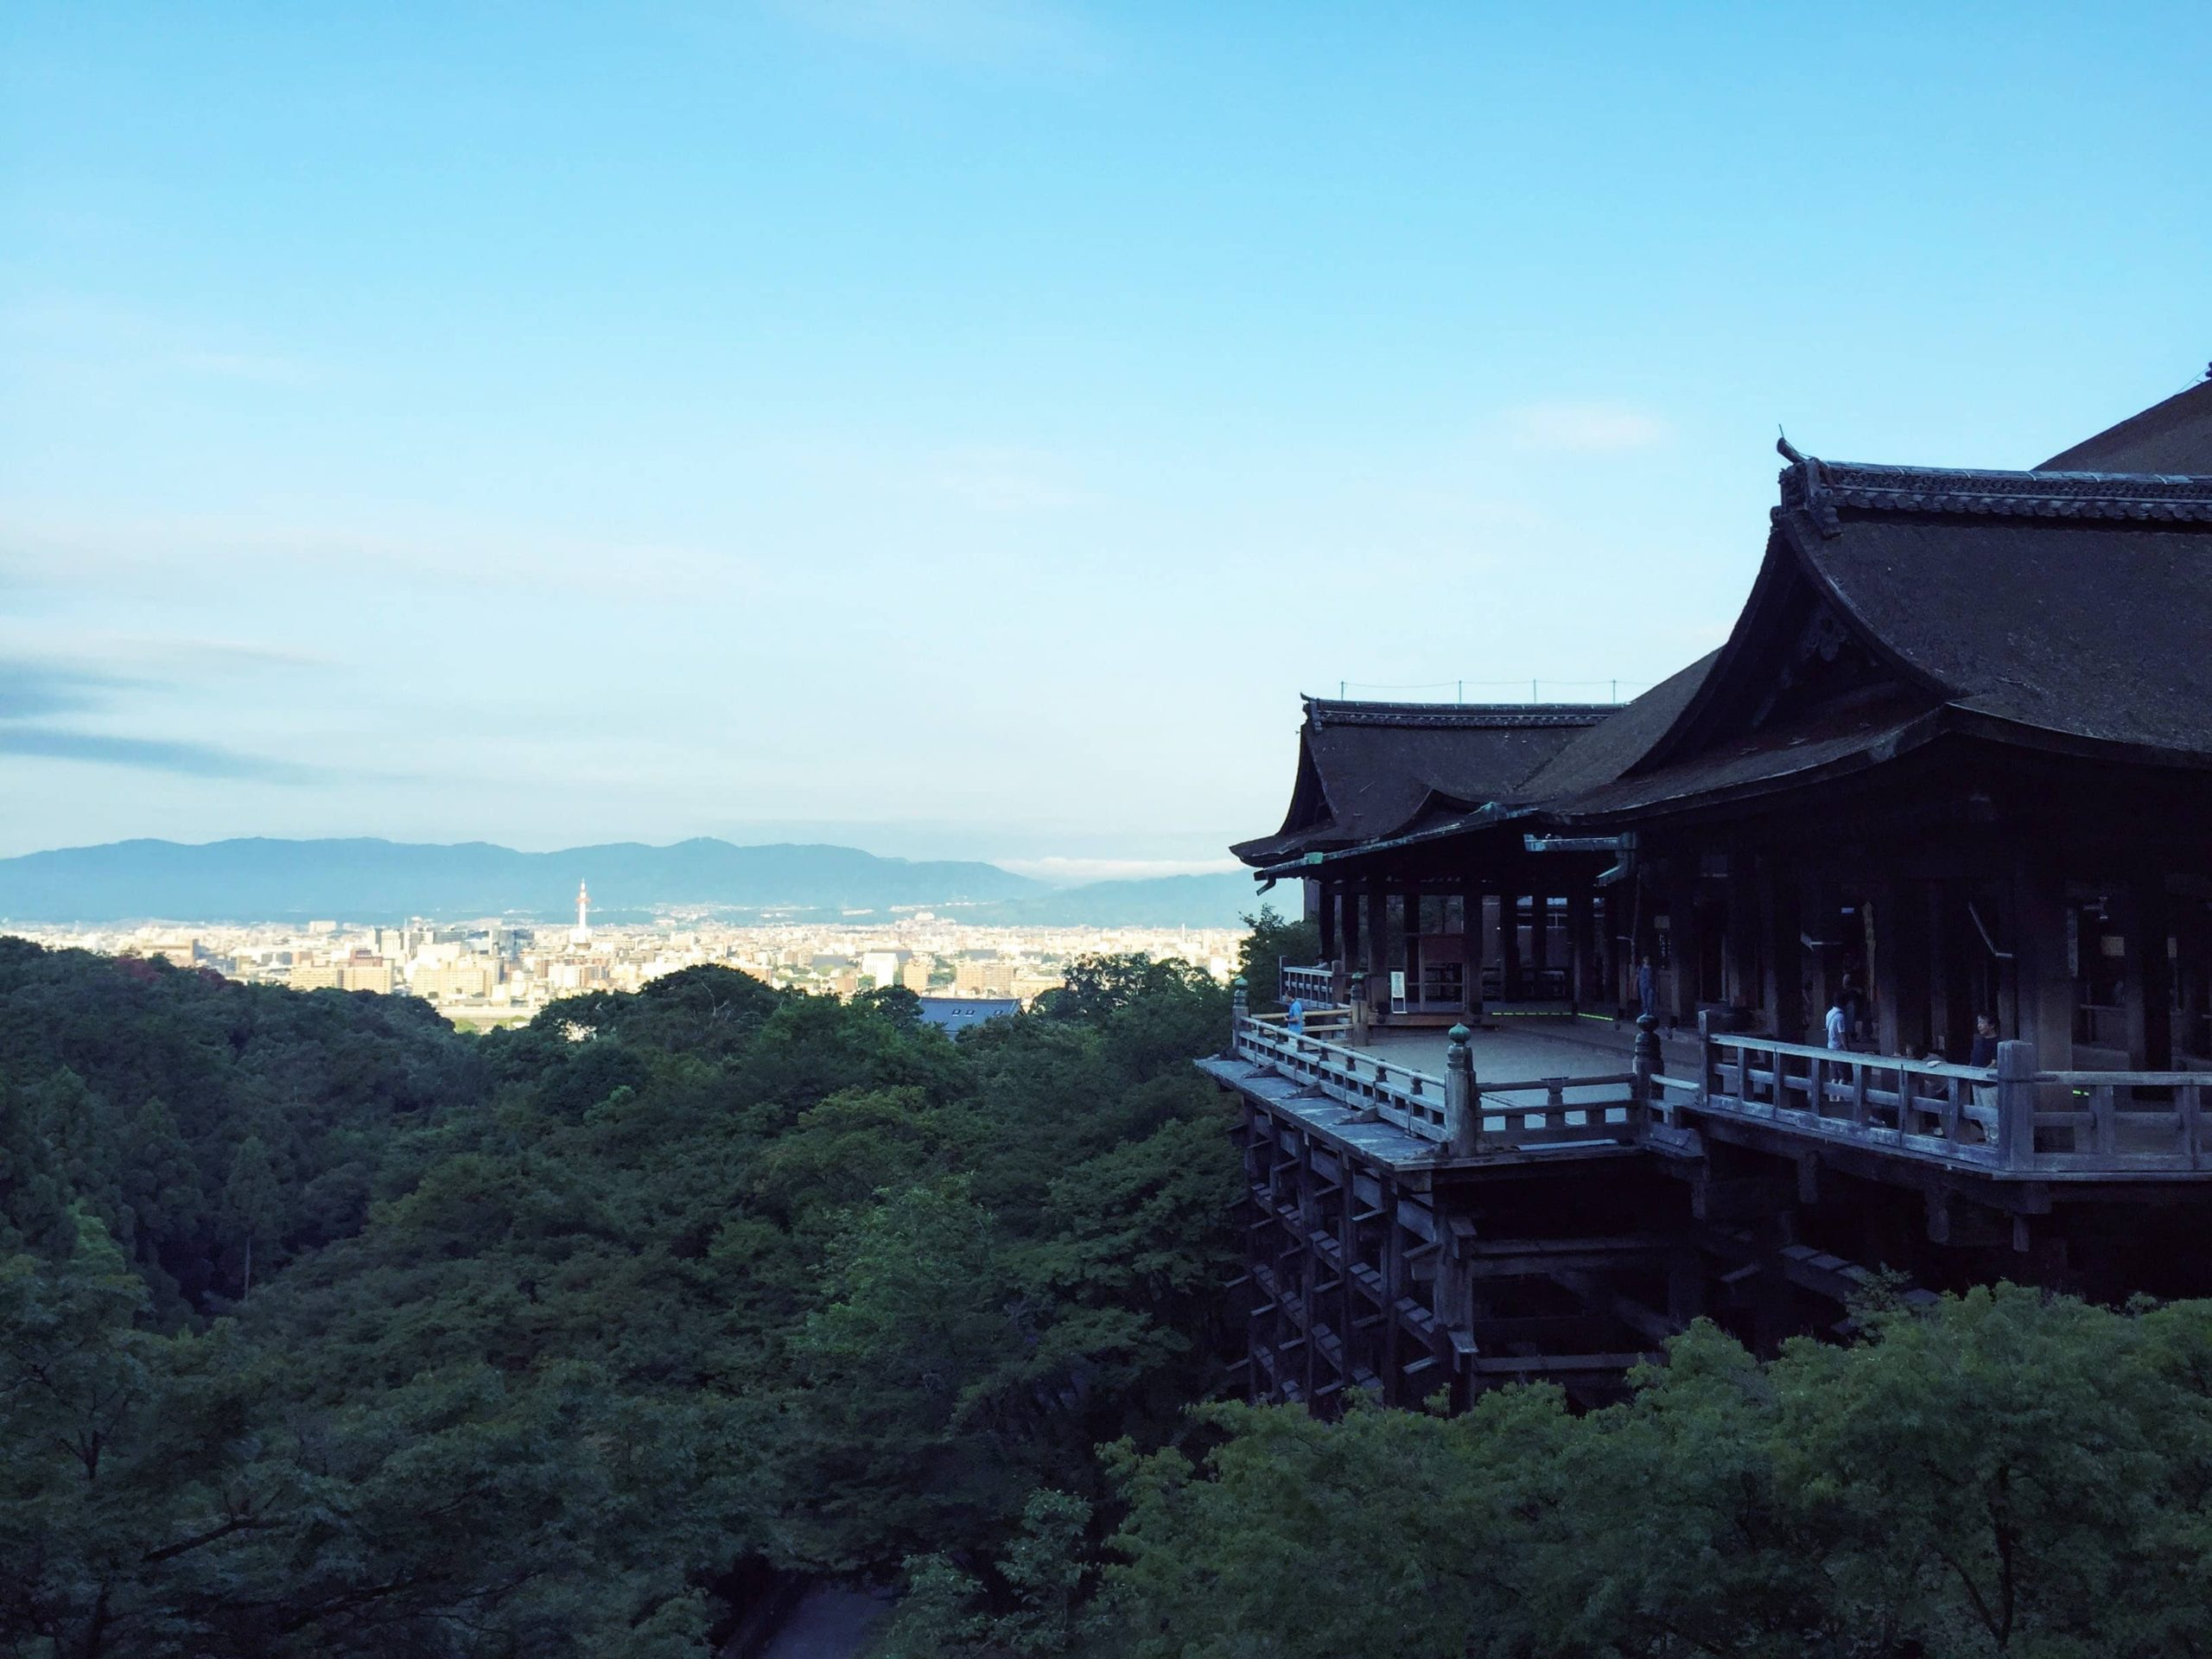 It is said that a monk name Kenshin built what would be the foundation of Kiyomizu Temple in 778, when he had a dream telling him to head towards Otowayama.